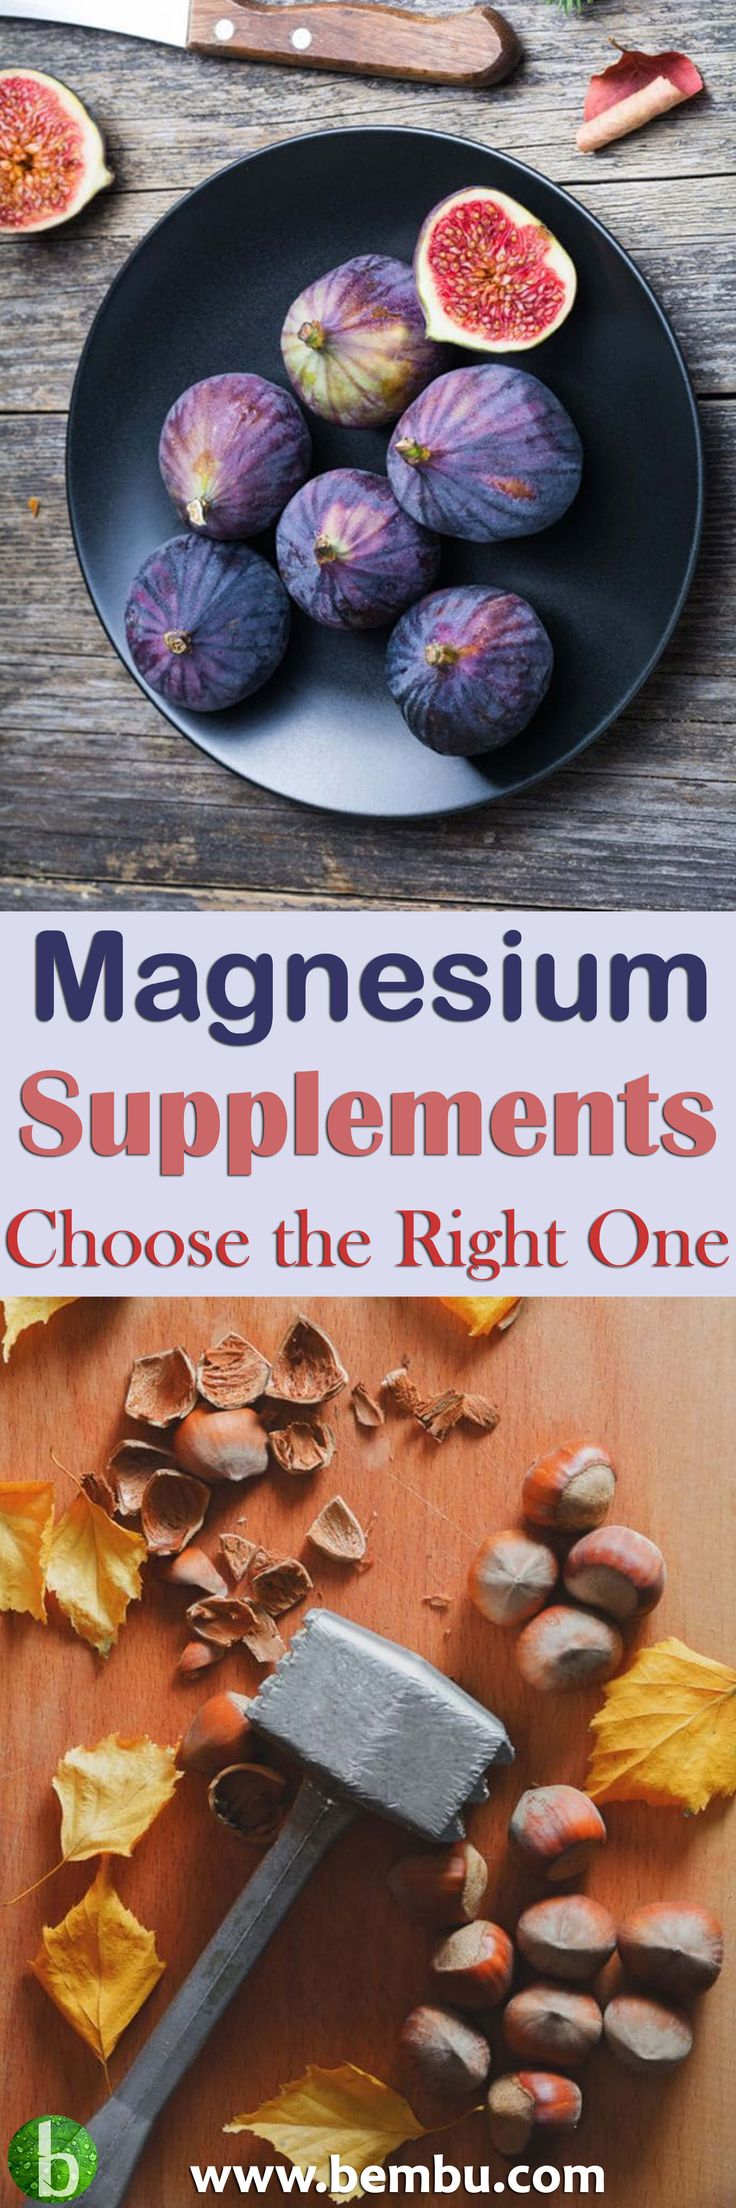 Before buying magnesium supplements, make sure you know how to choose the best type(s) for you to avoid wasting your hard-earned money. Health Tips │ Health Ideas │Healthy Food │Health │Food │Vitamin │Healing │Natural Remedies │Nutrition │Natural Cure │Herbal Remedies │Natural beauty #Health #Ideas #Tips #Vitamin #Healthyfood #Food #Vitamin #Healing #Remedies #Nutrition #Cure #Herbalremedies #Naturalbeauty